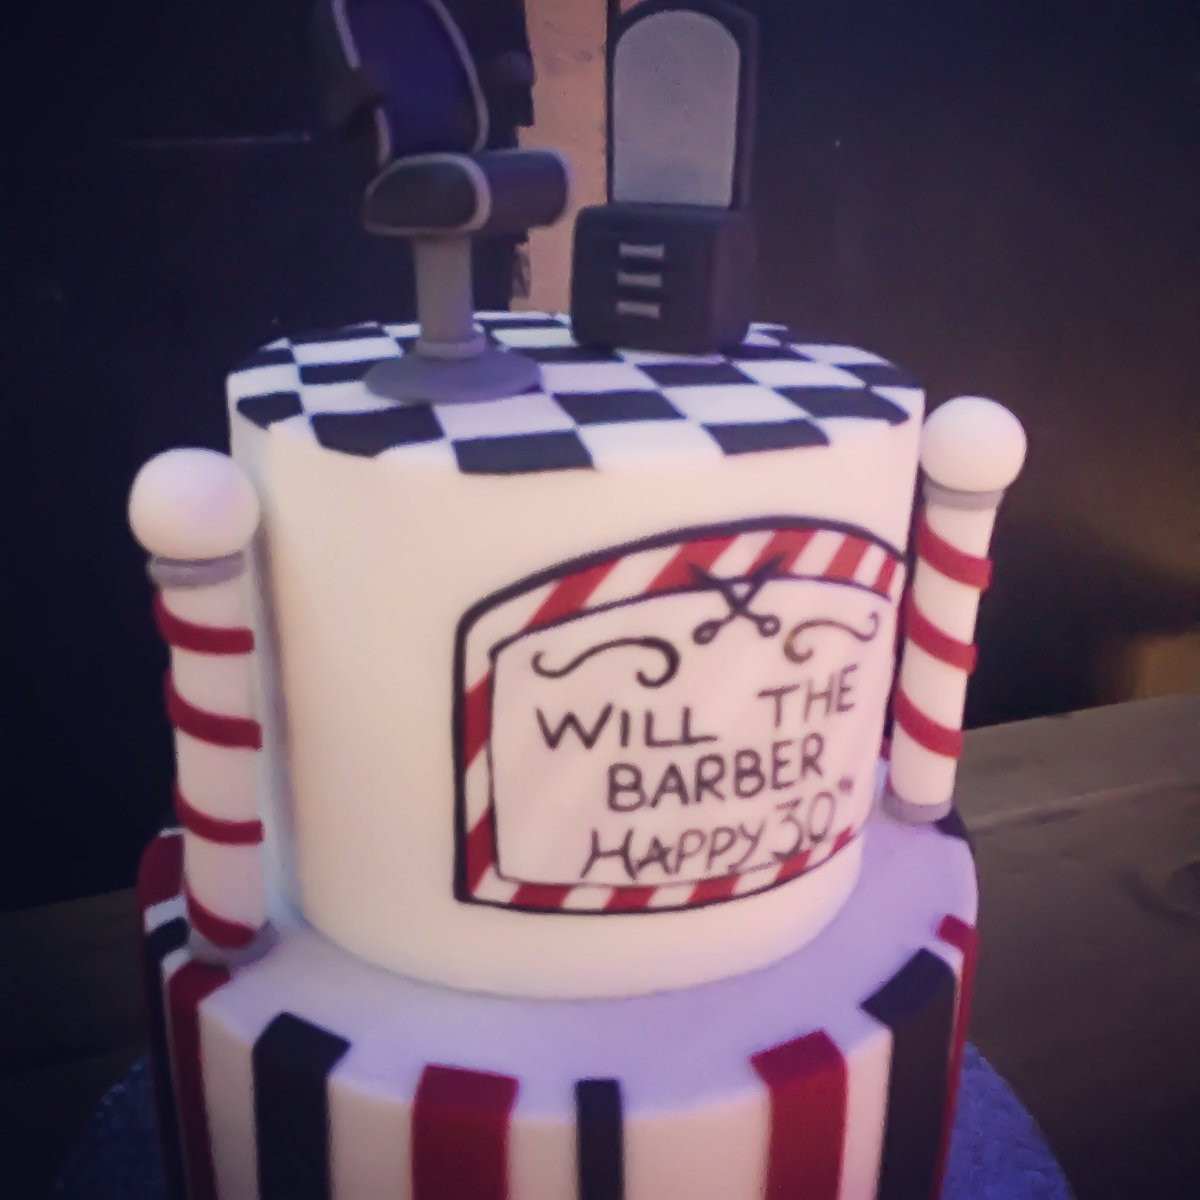 For Goodness Cake AM On Twitter What Better Way To Celebrate The Big 3 0 Than With Cakestagram Cakedecorating Cakesofinstagram